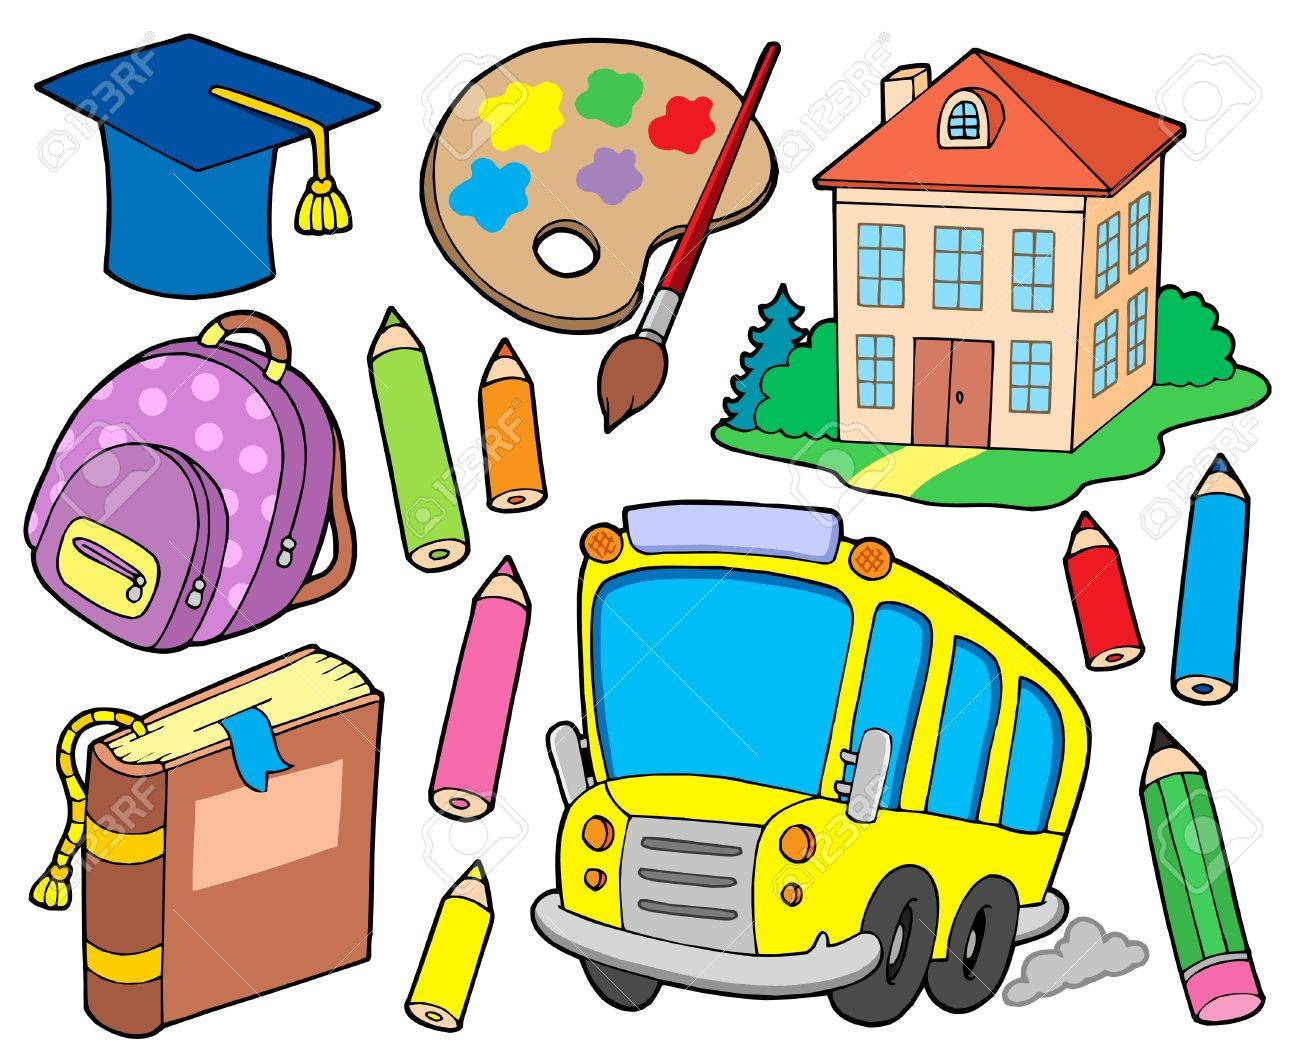 School collection 1 - vector illustration. Stock Vector - 4141986